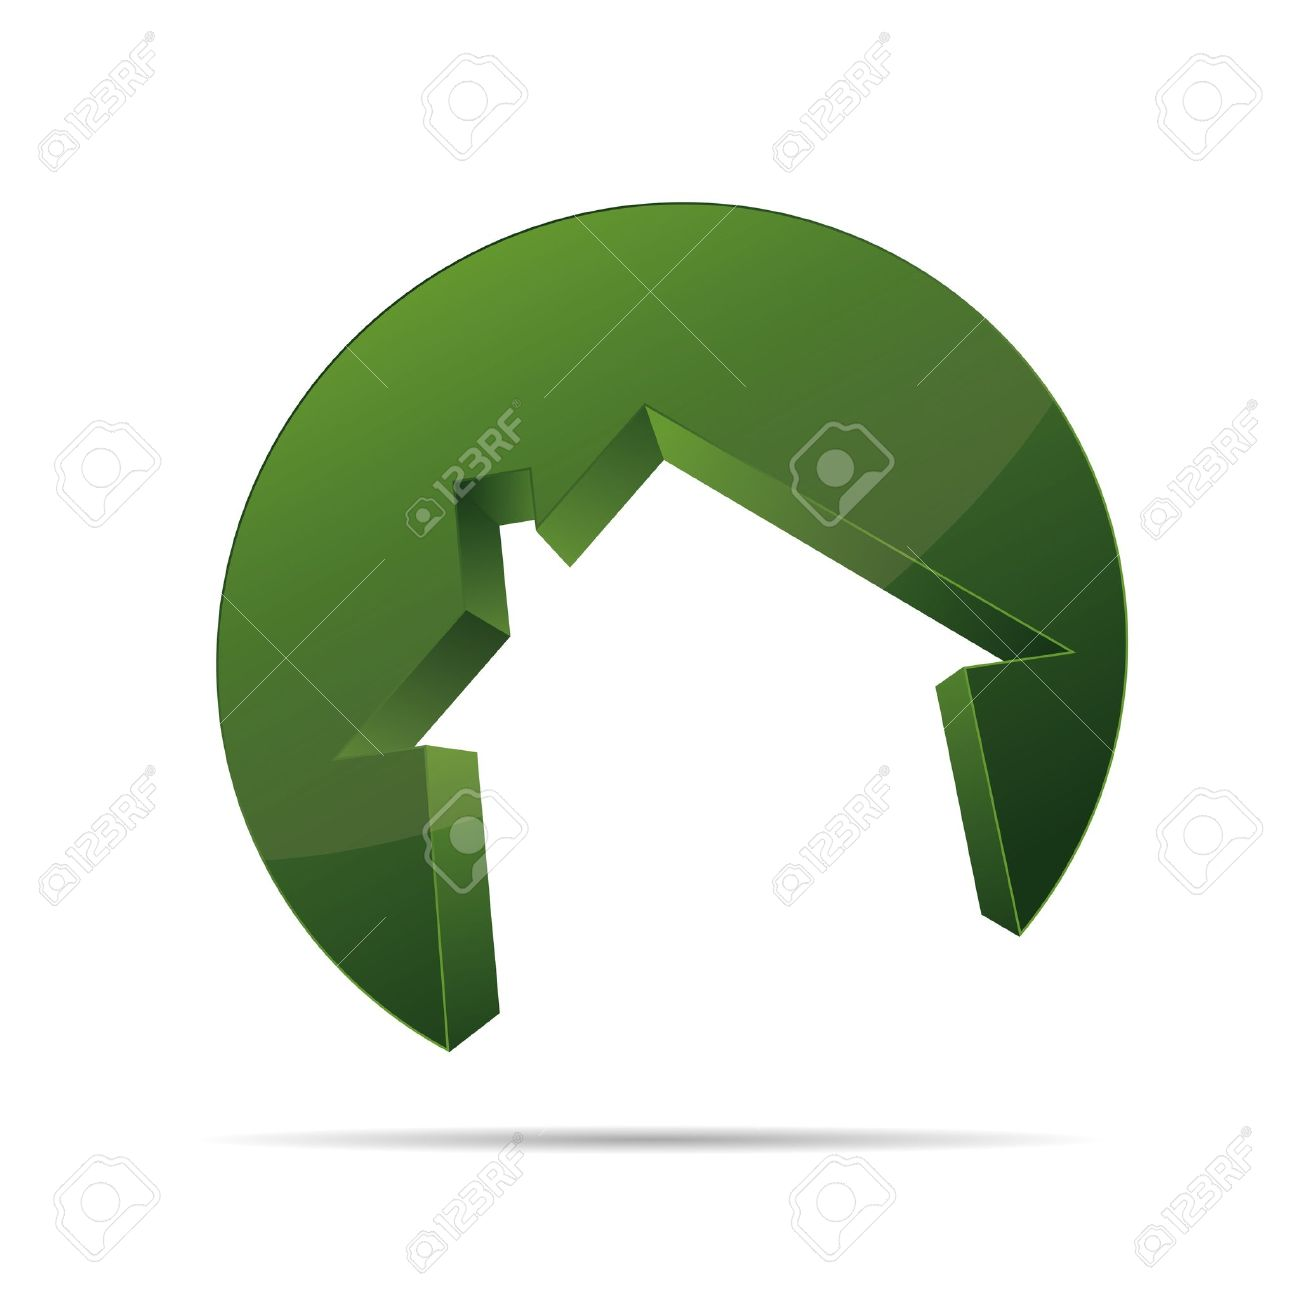 3d building house home architect circular form symbol corporate